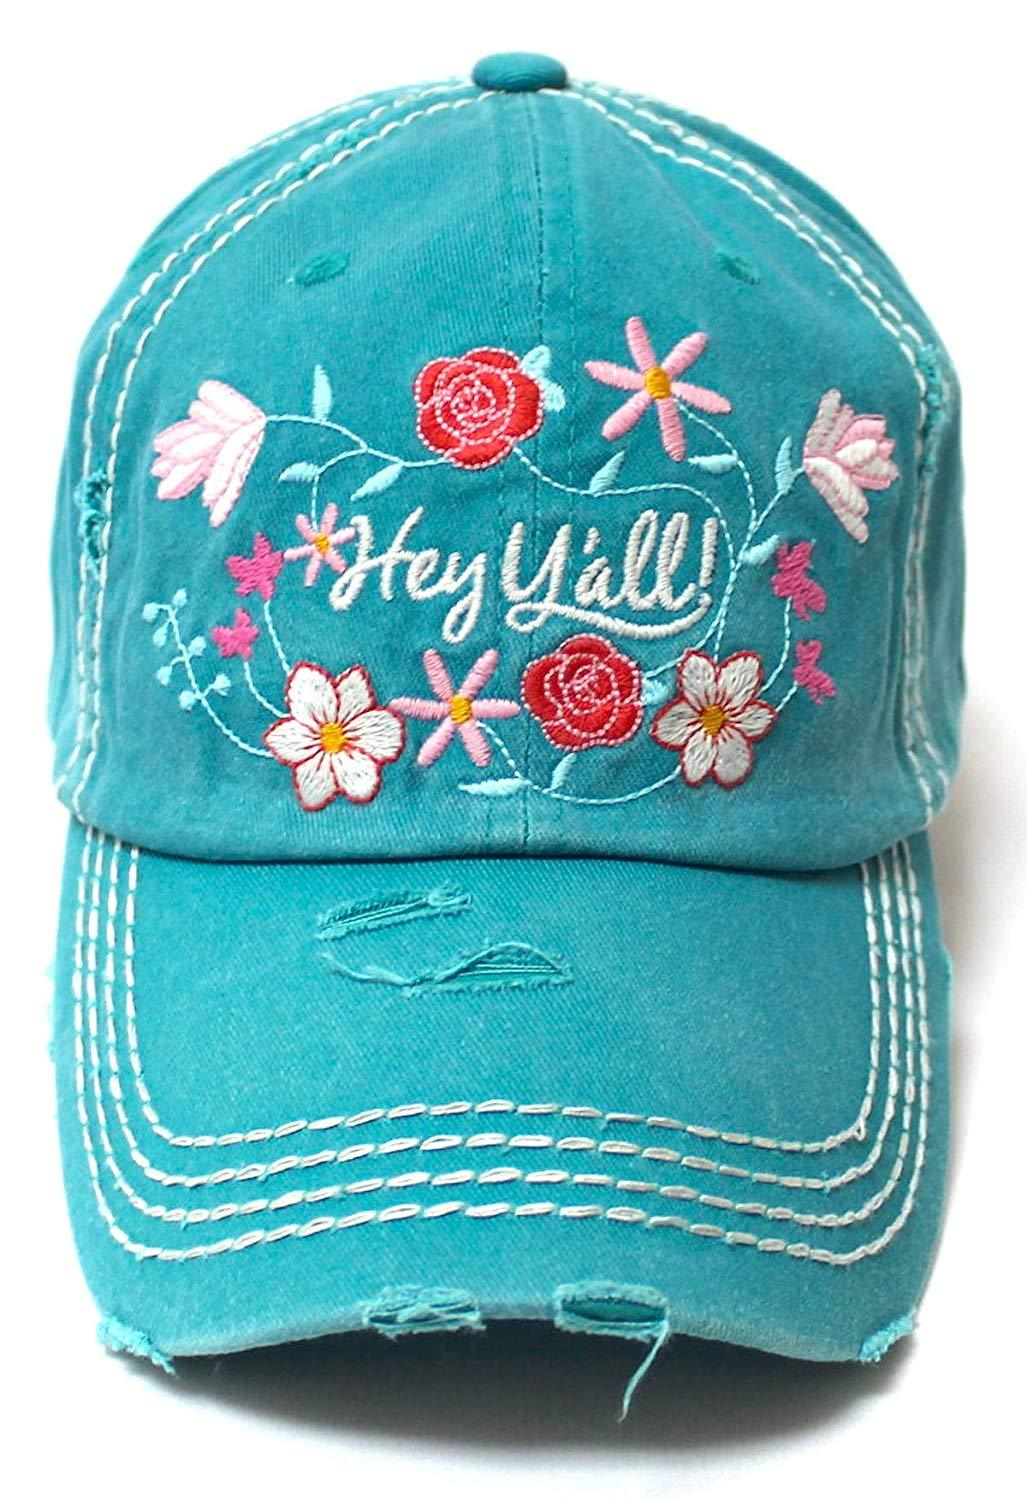 9184f3d16 ... Caps 'N Vintage. Women's Summer Ballcap Hey Y'all! Wildflower Embroidery  Hat, Turquoise